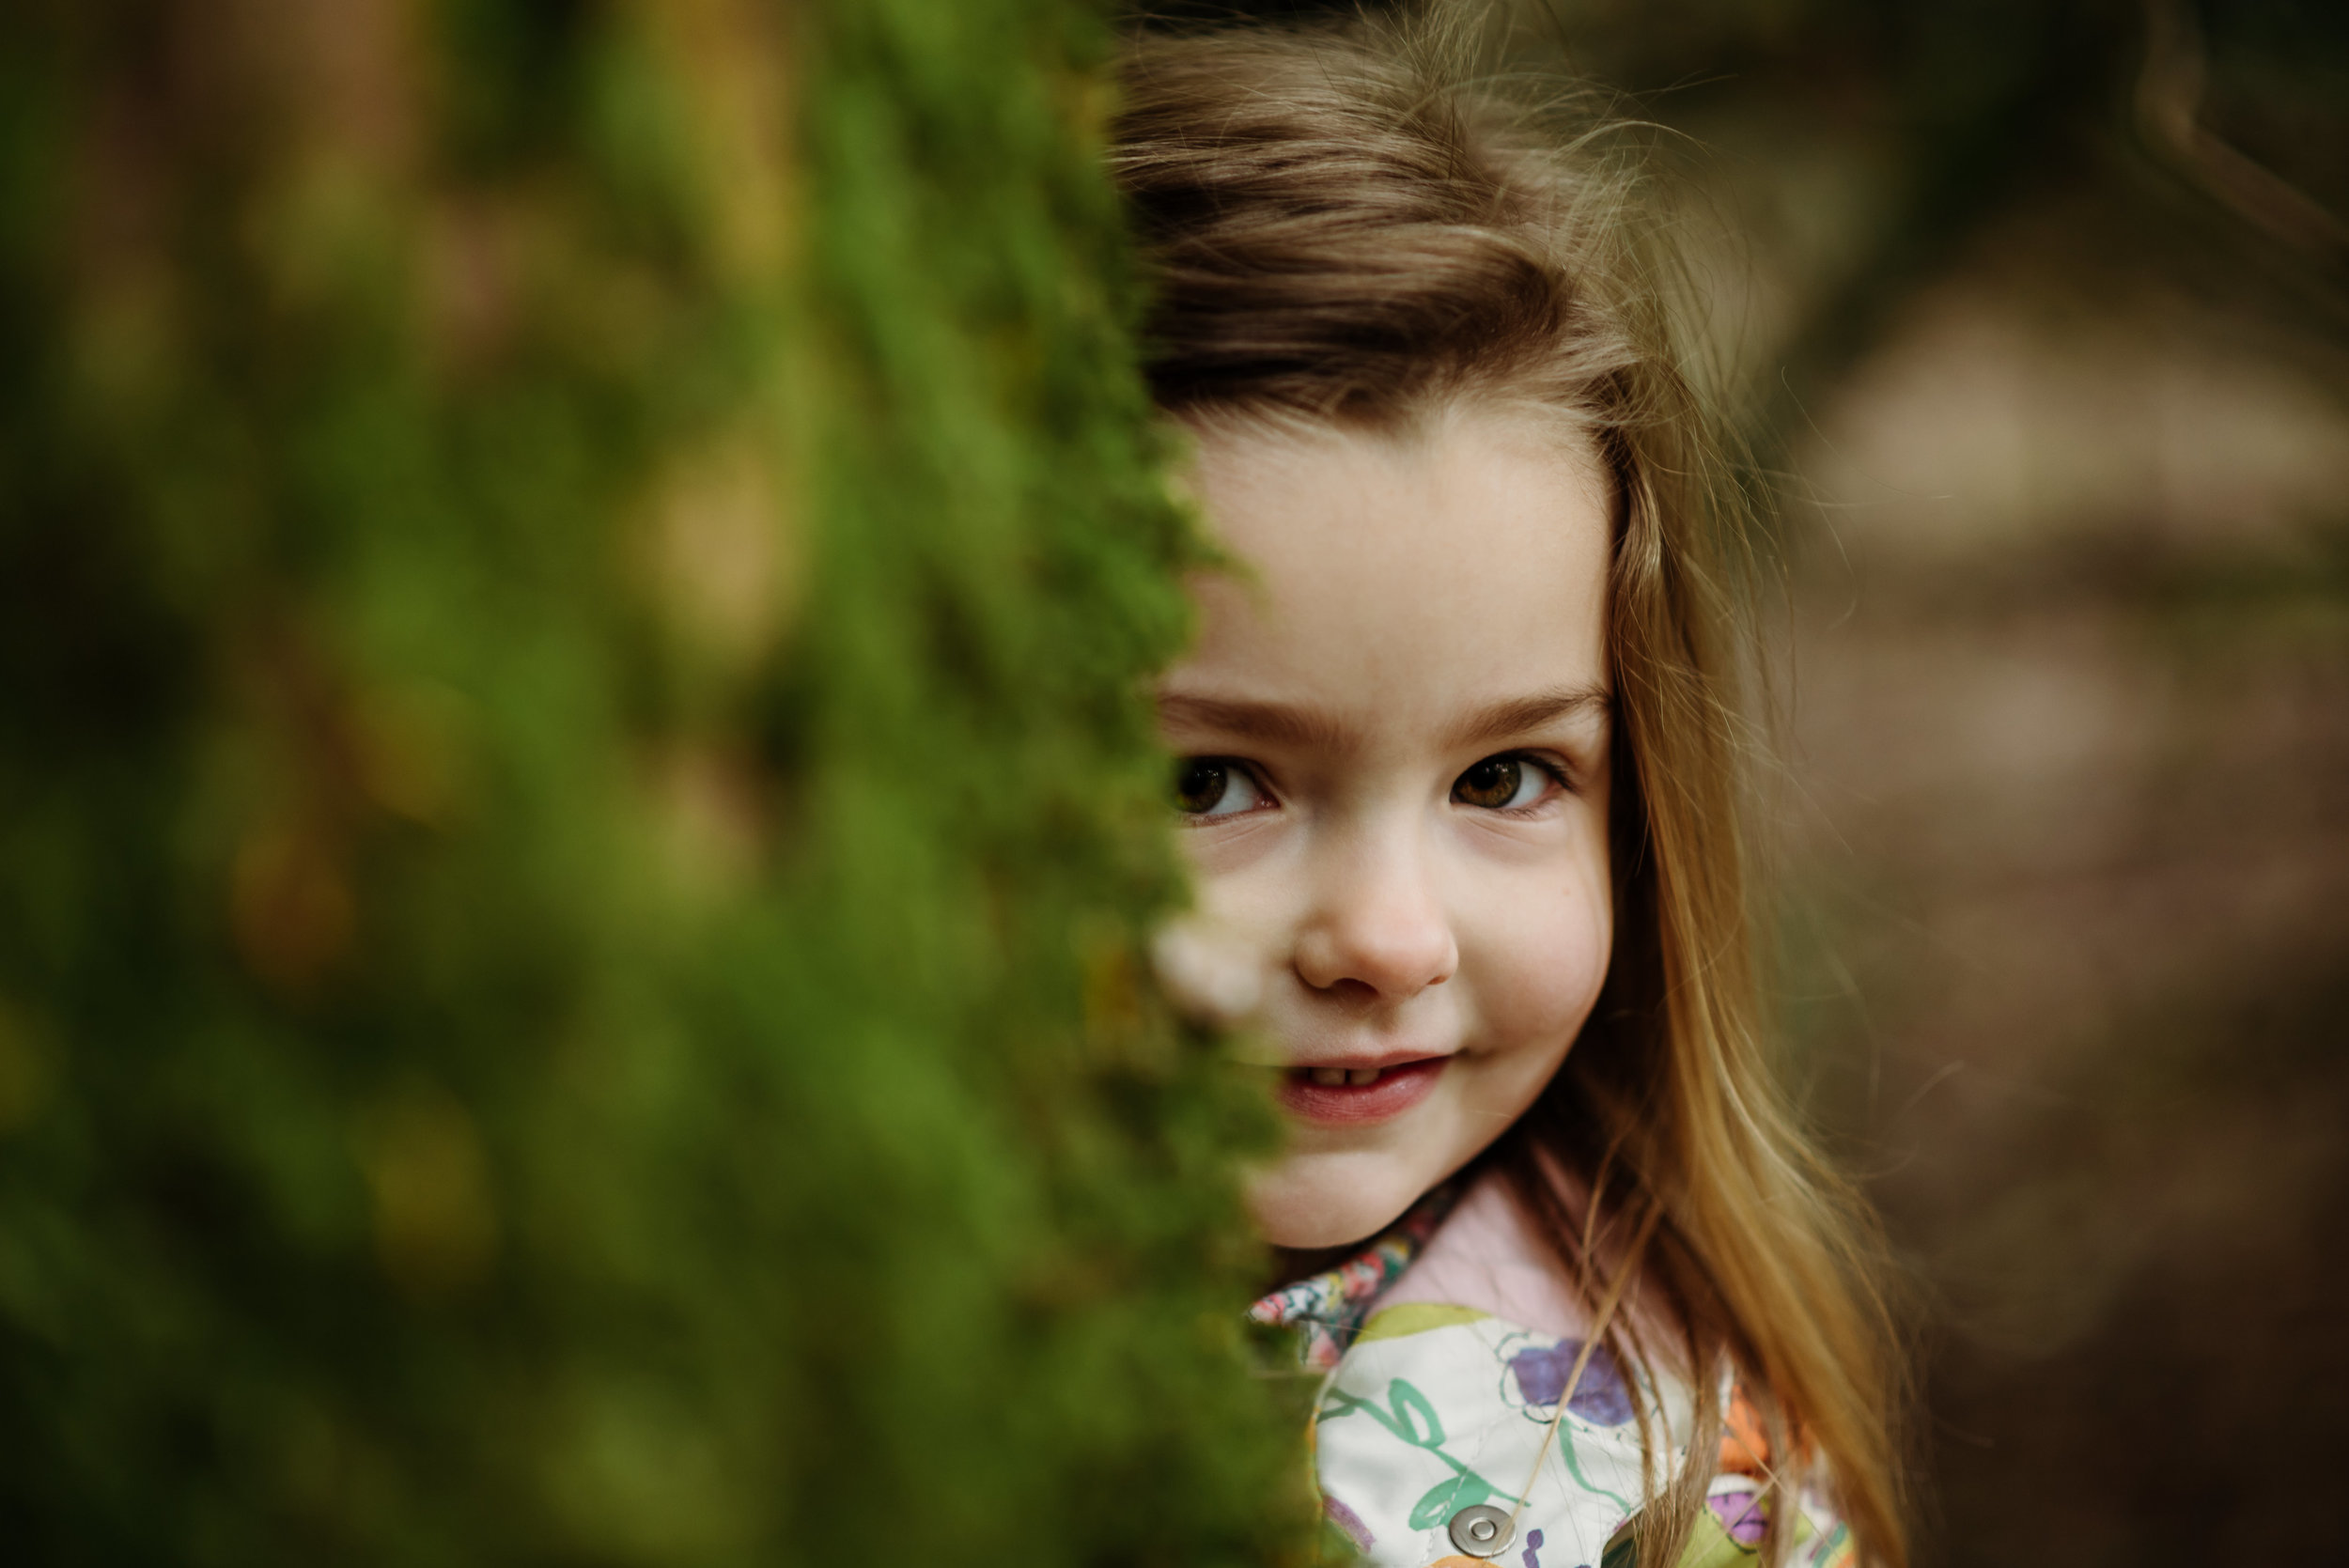 towneley park burnley - family session